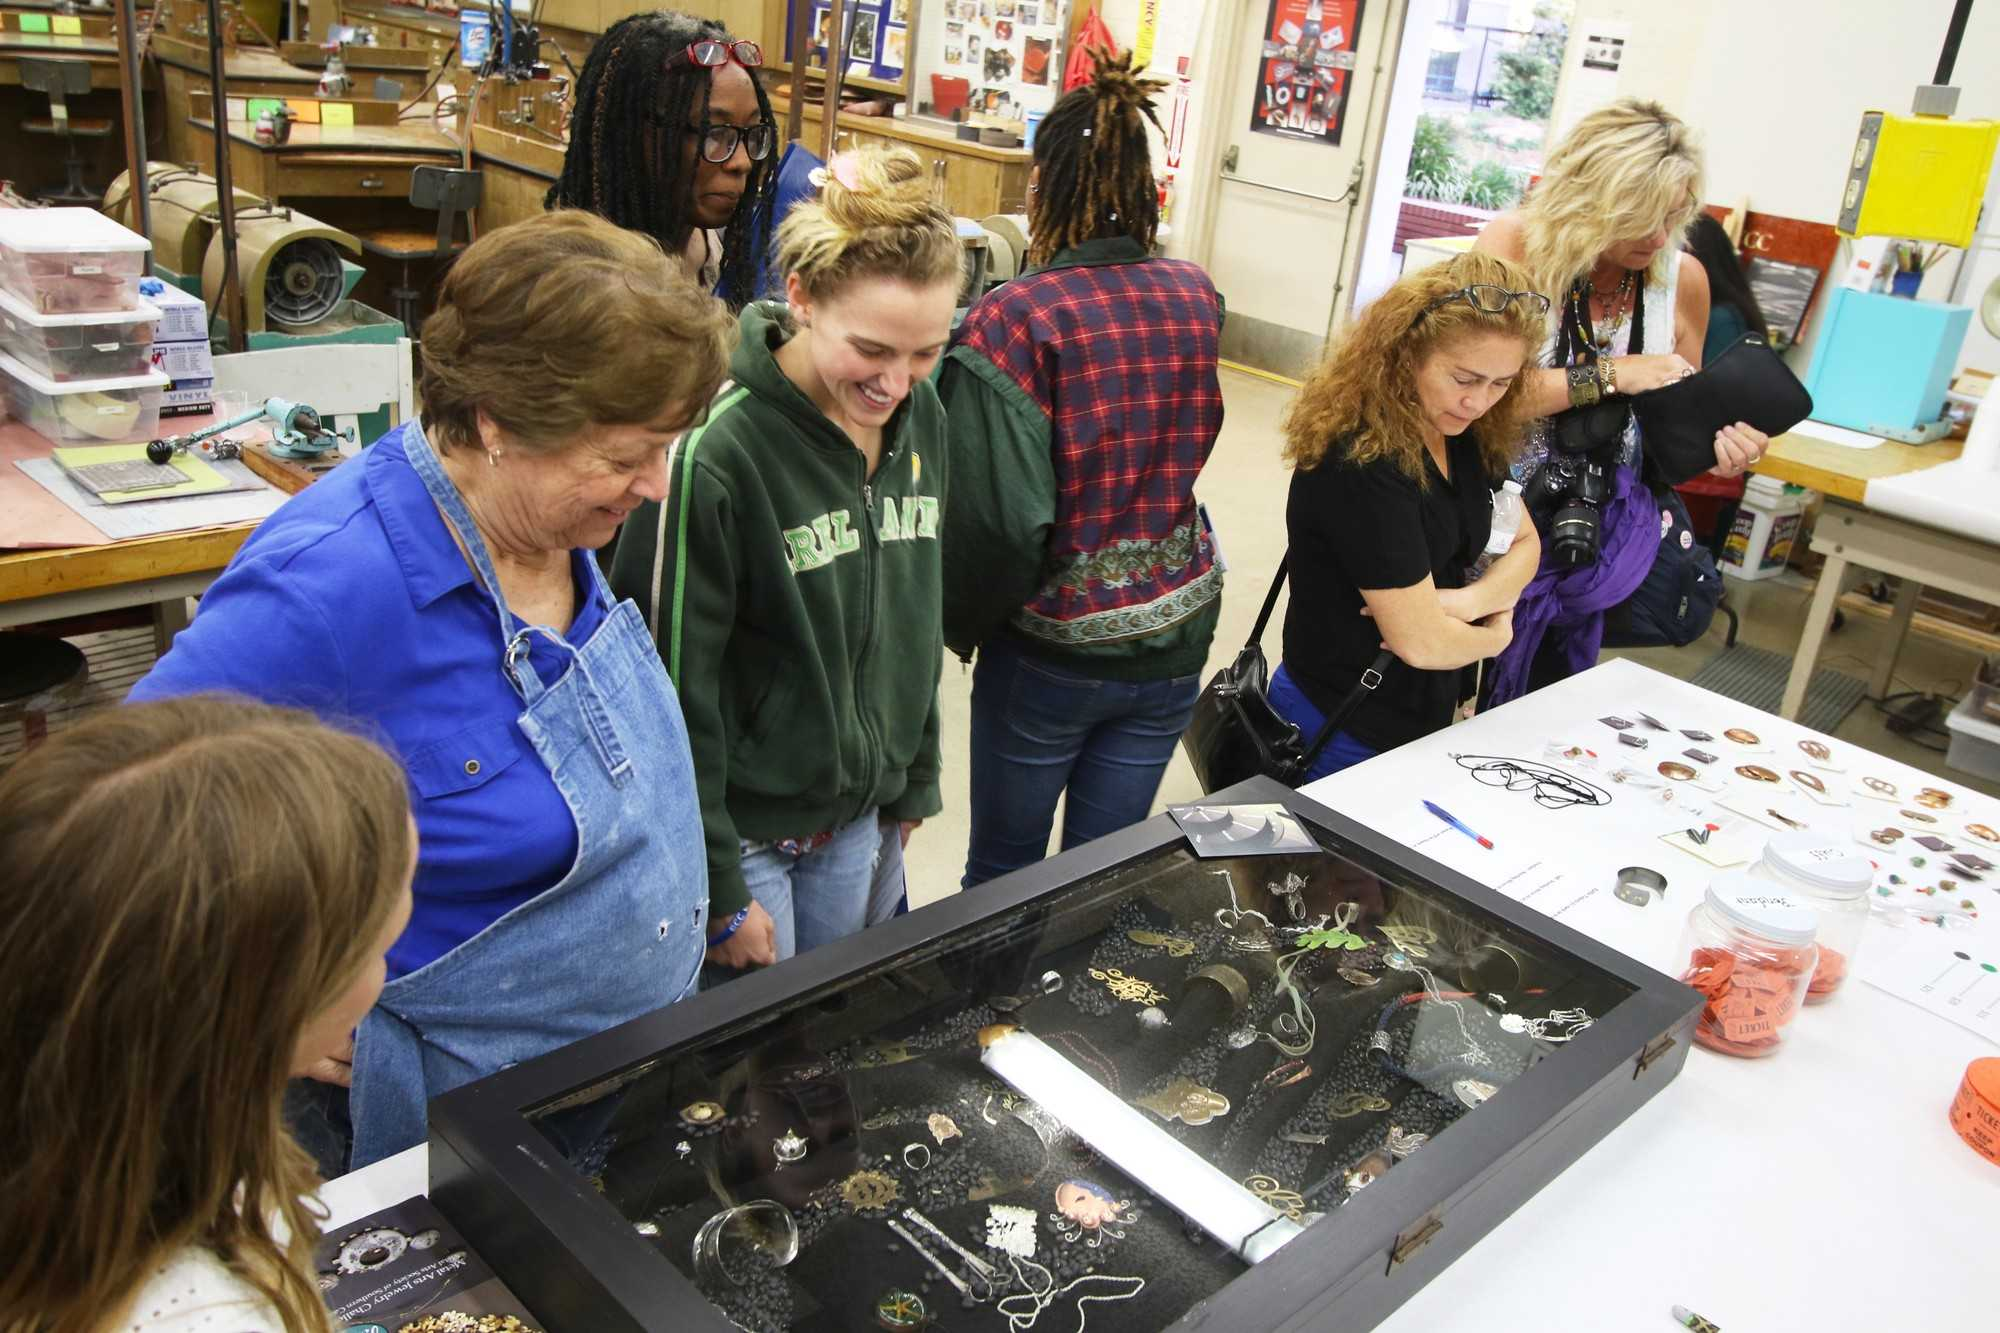 The Fine Arts Division Open House hosted an exhibition showcasing hand-made jewelry Friday, April 22.